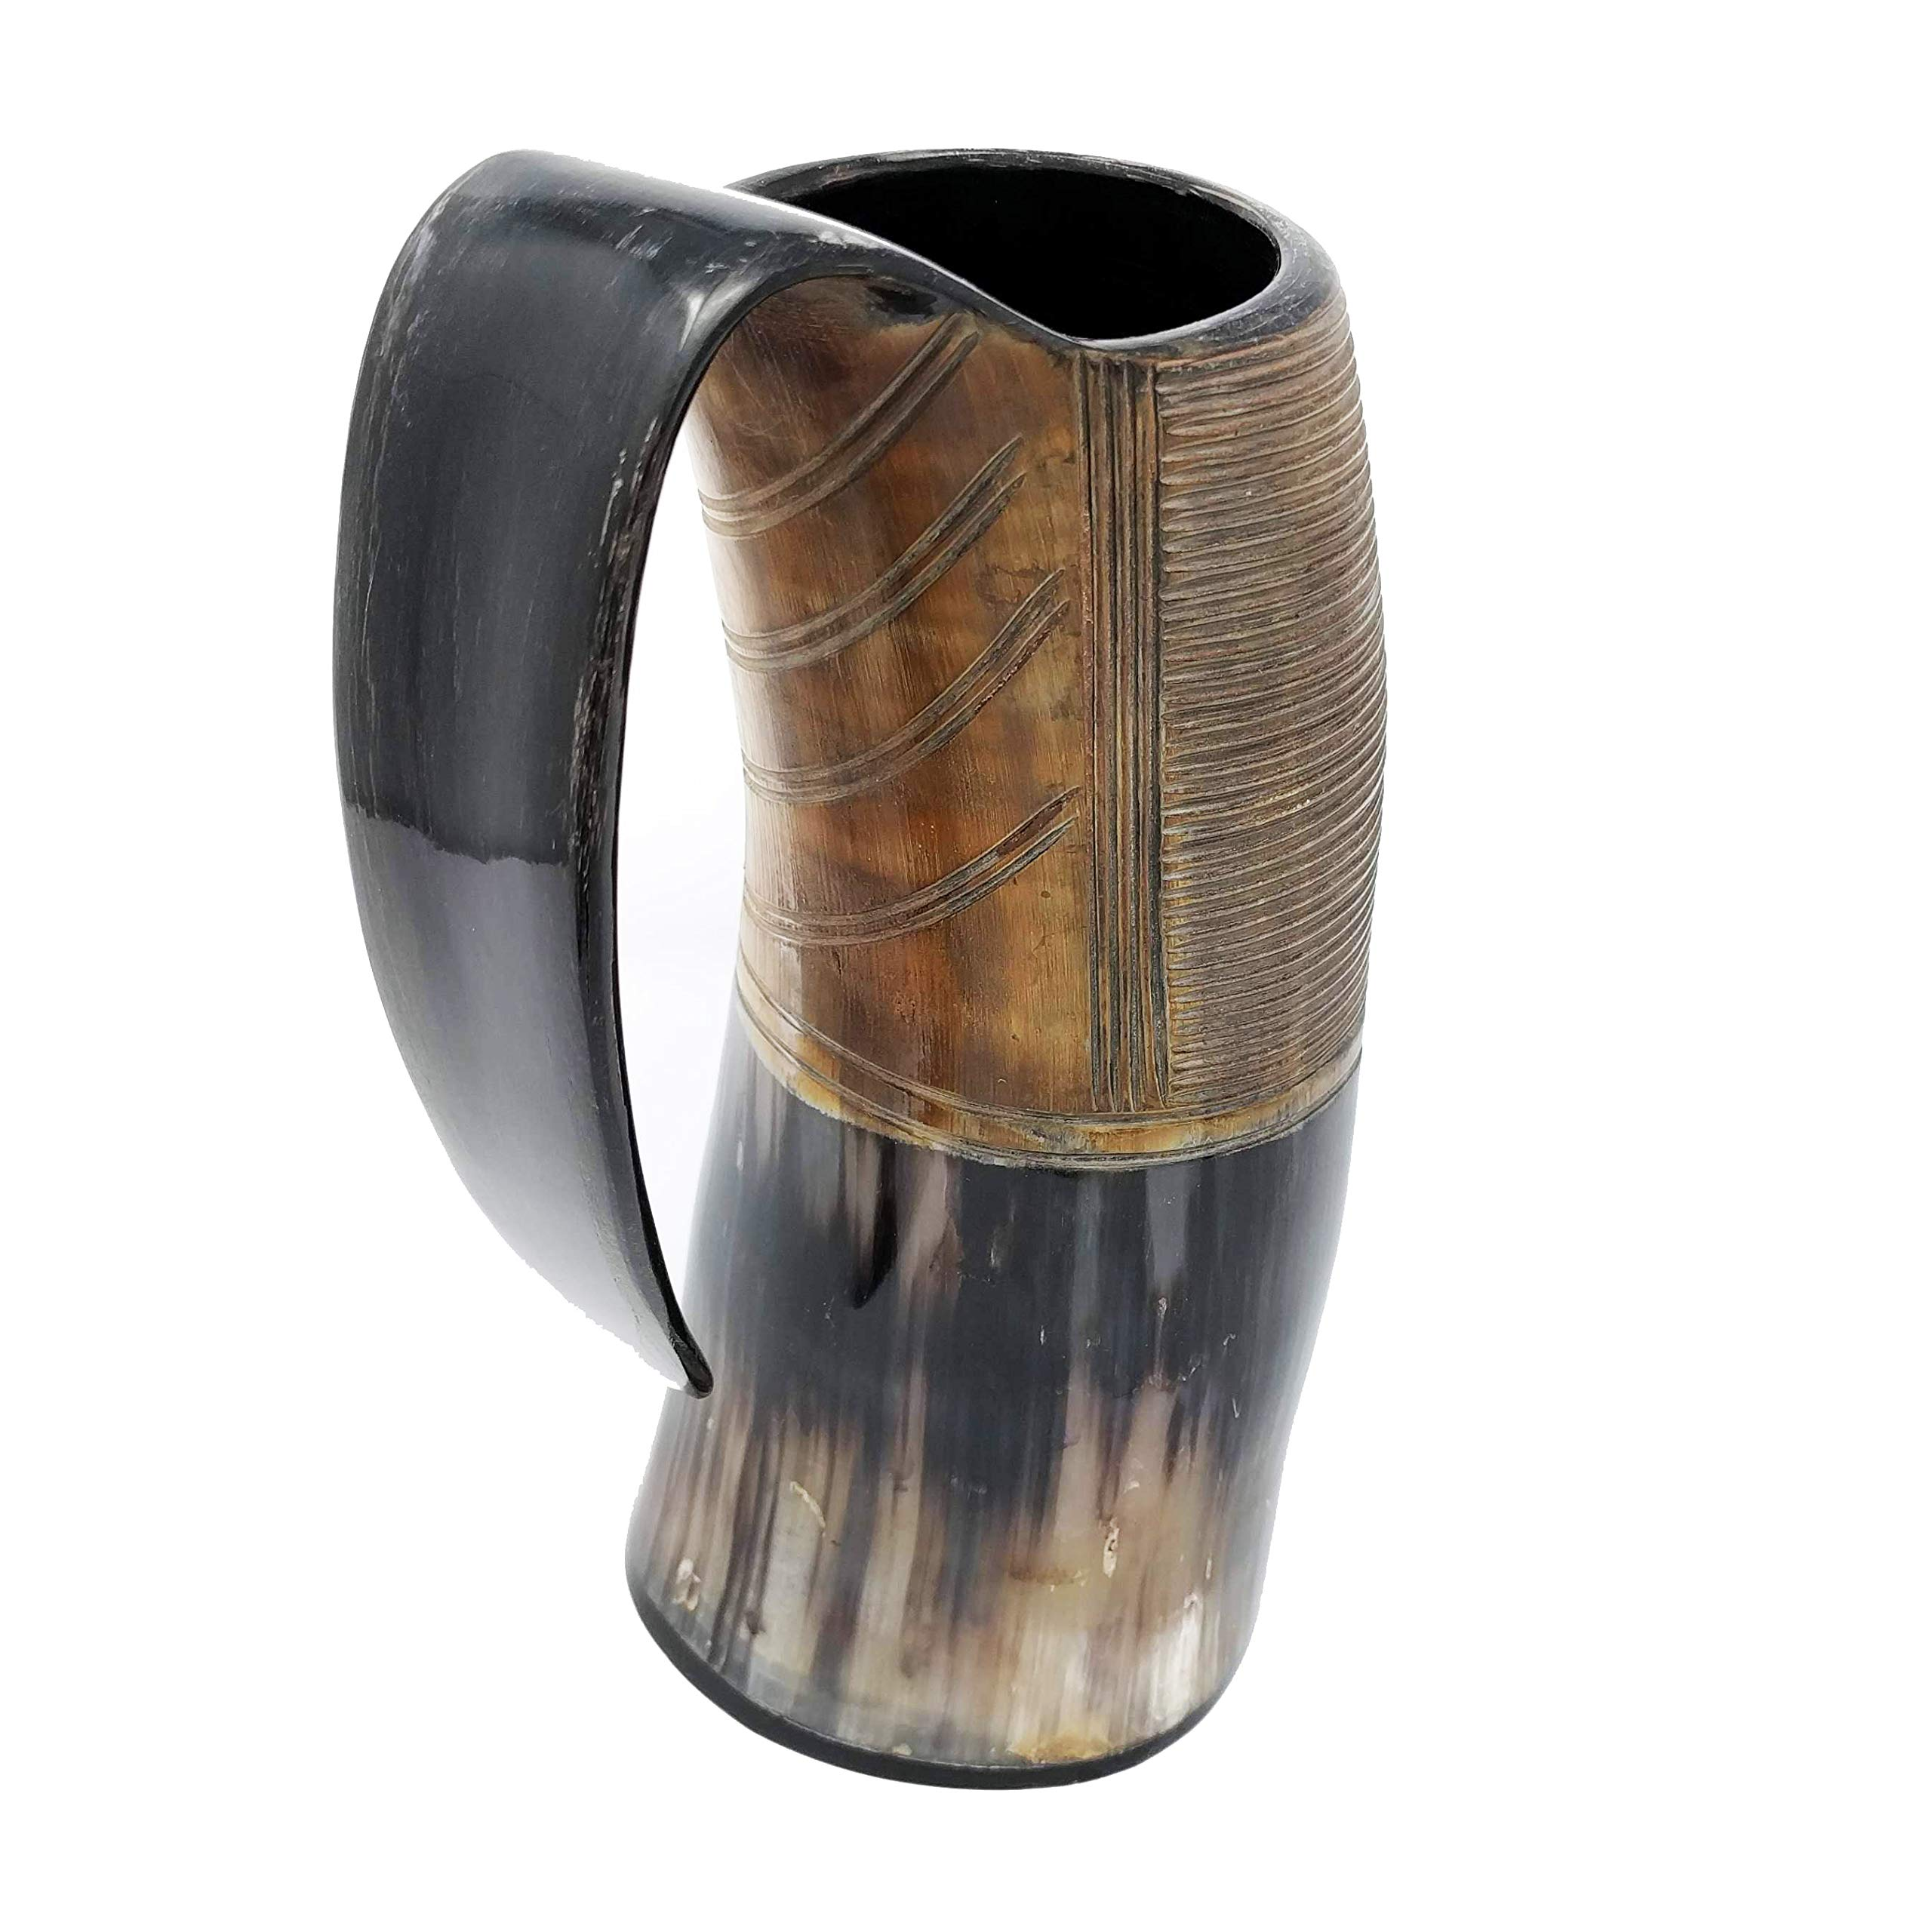 AleHorn – The Original Handcrafted Authentic Viking Drinking Horn Tankard for Beer, Mead, Ale – Medieval Inspired Stein Mug – Food Safe Vessel With Handle (XXL, Burnt)